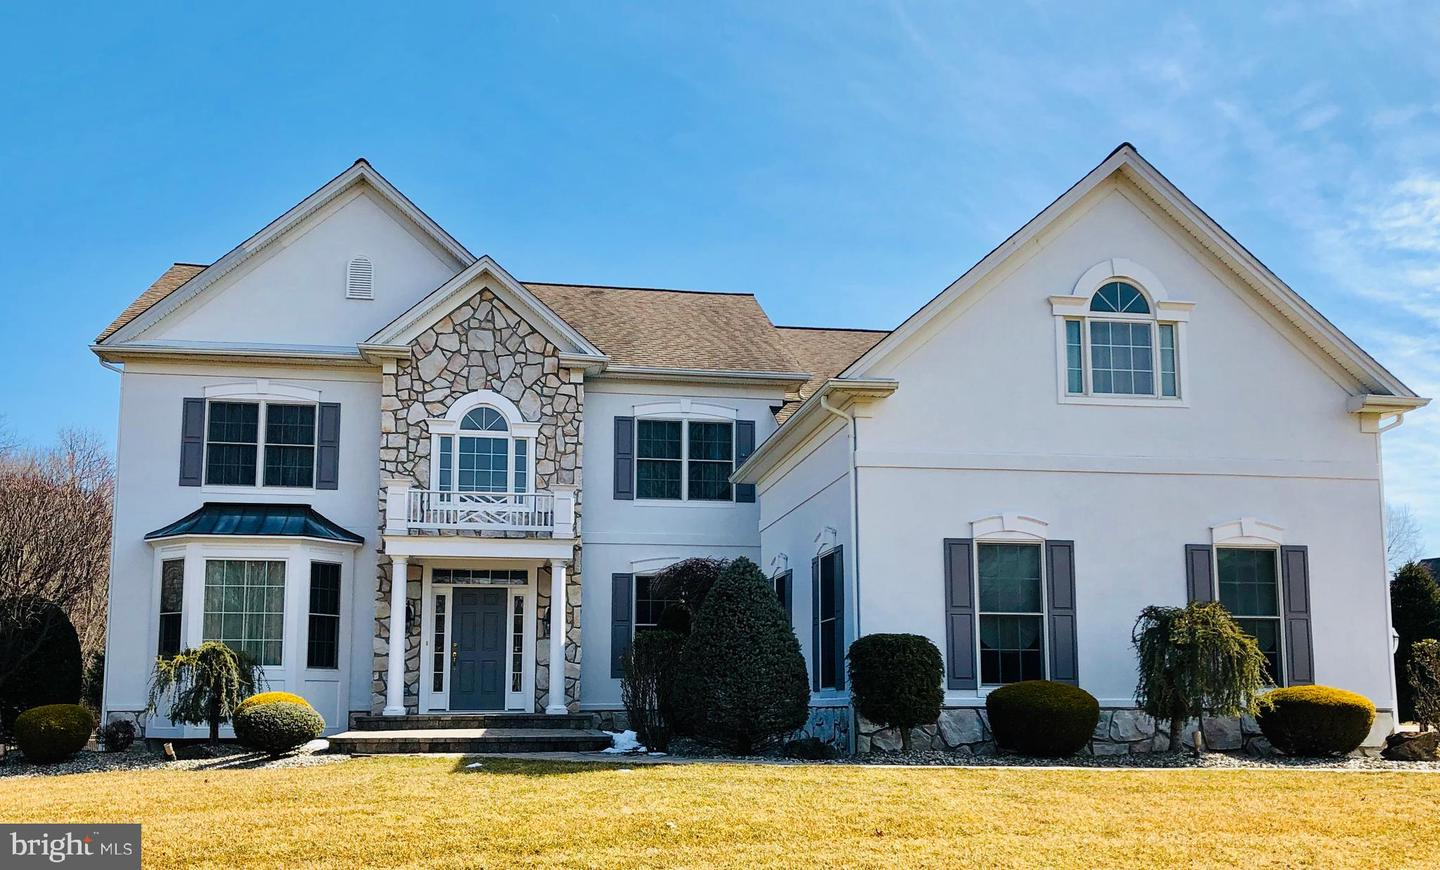 Property for Sale at 1 VILLA FARMS Circle Monroe Township, New Jersey 08831 United States